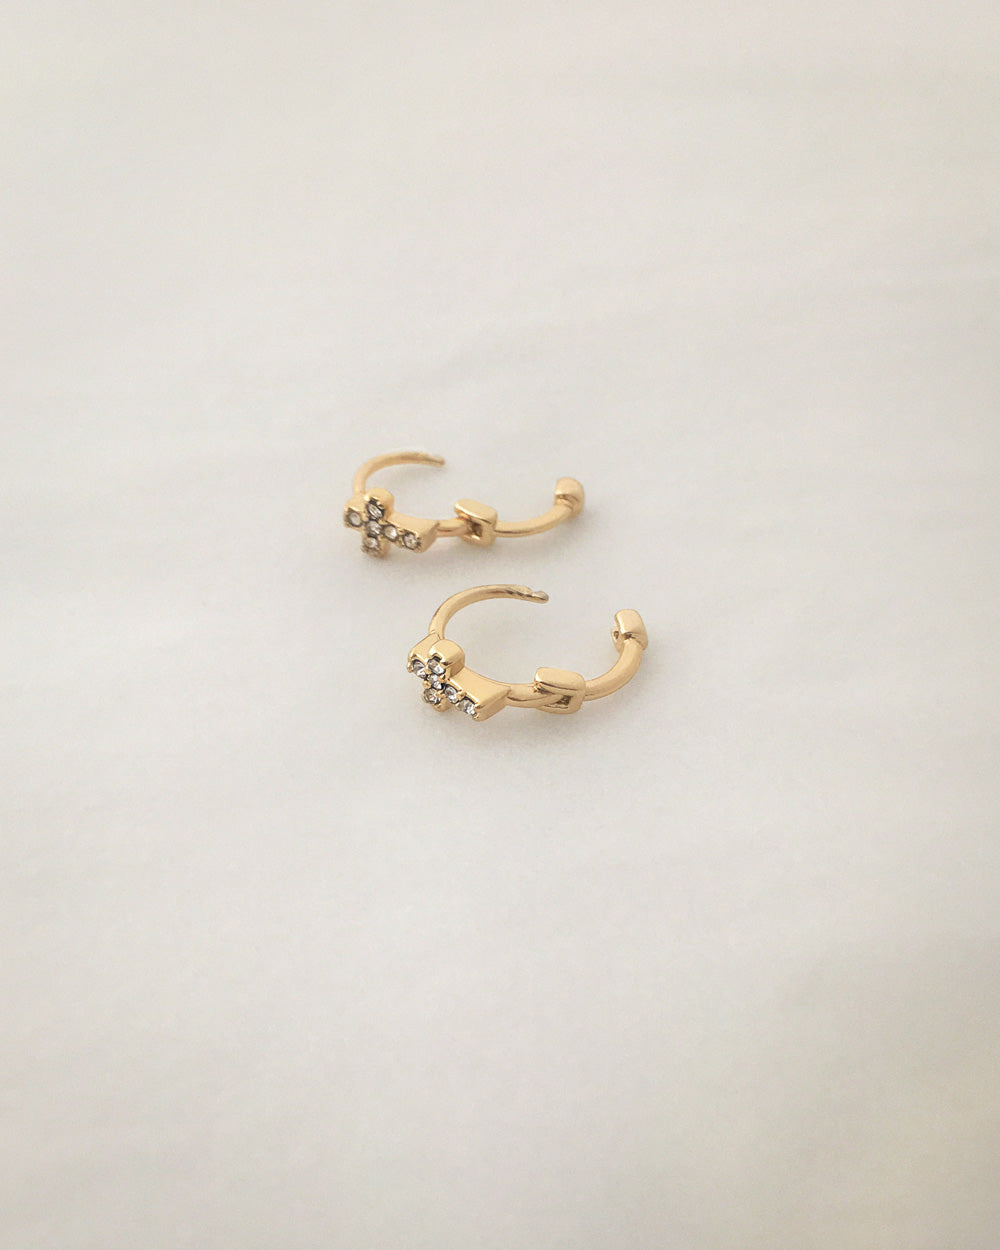 Dainty huggie hoops featuring a tiny gold cross - The Hexad Jewelry